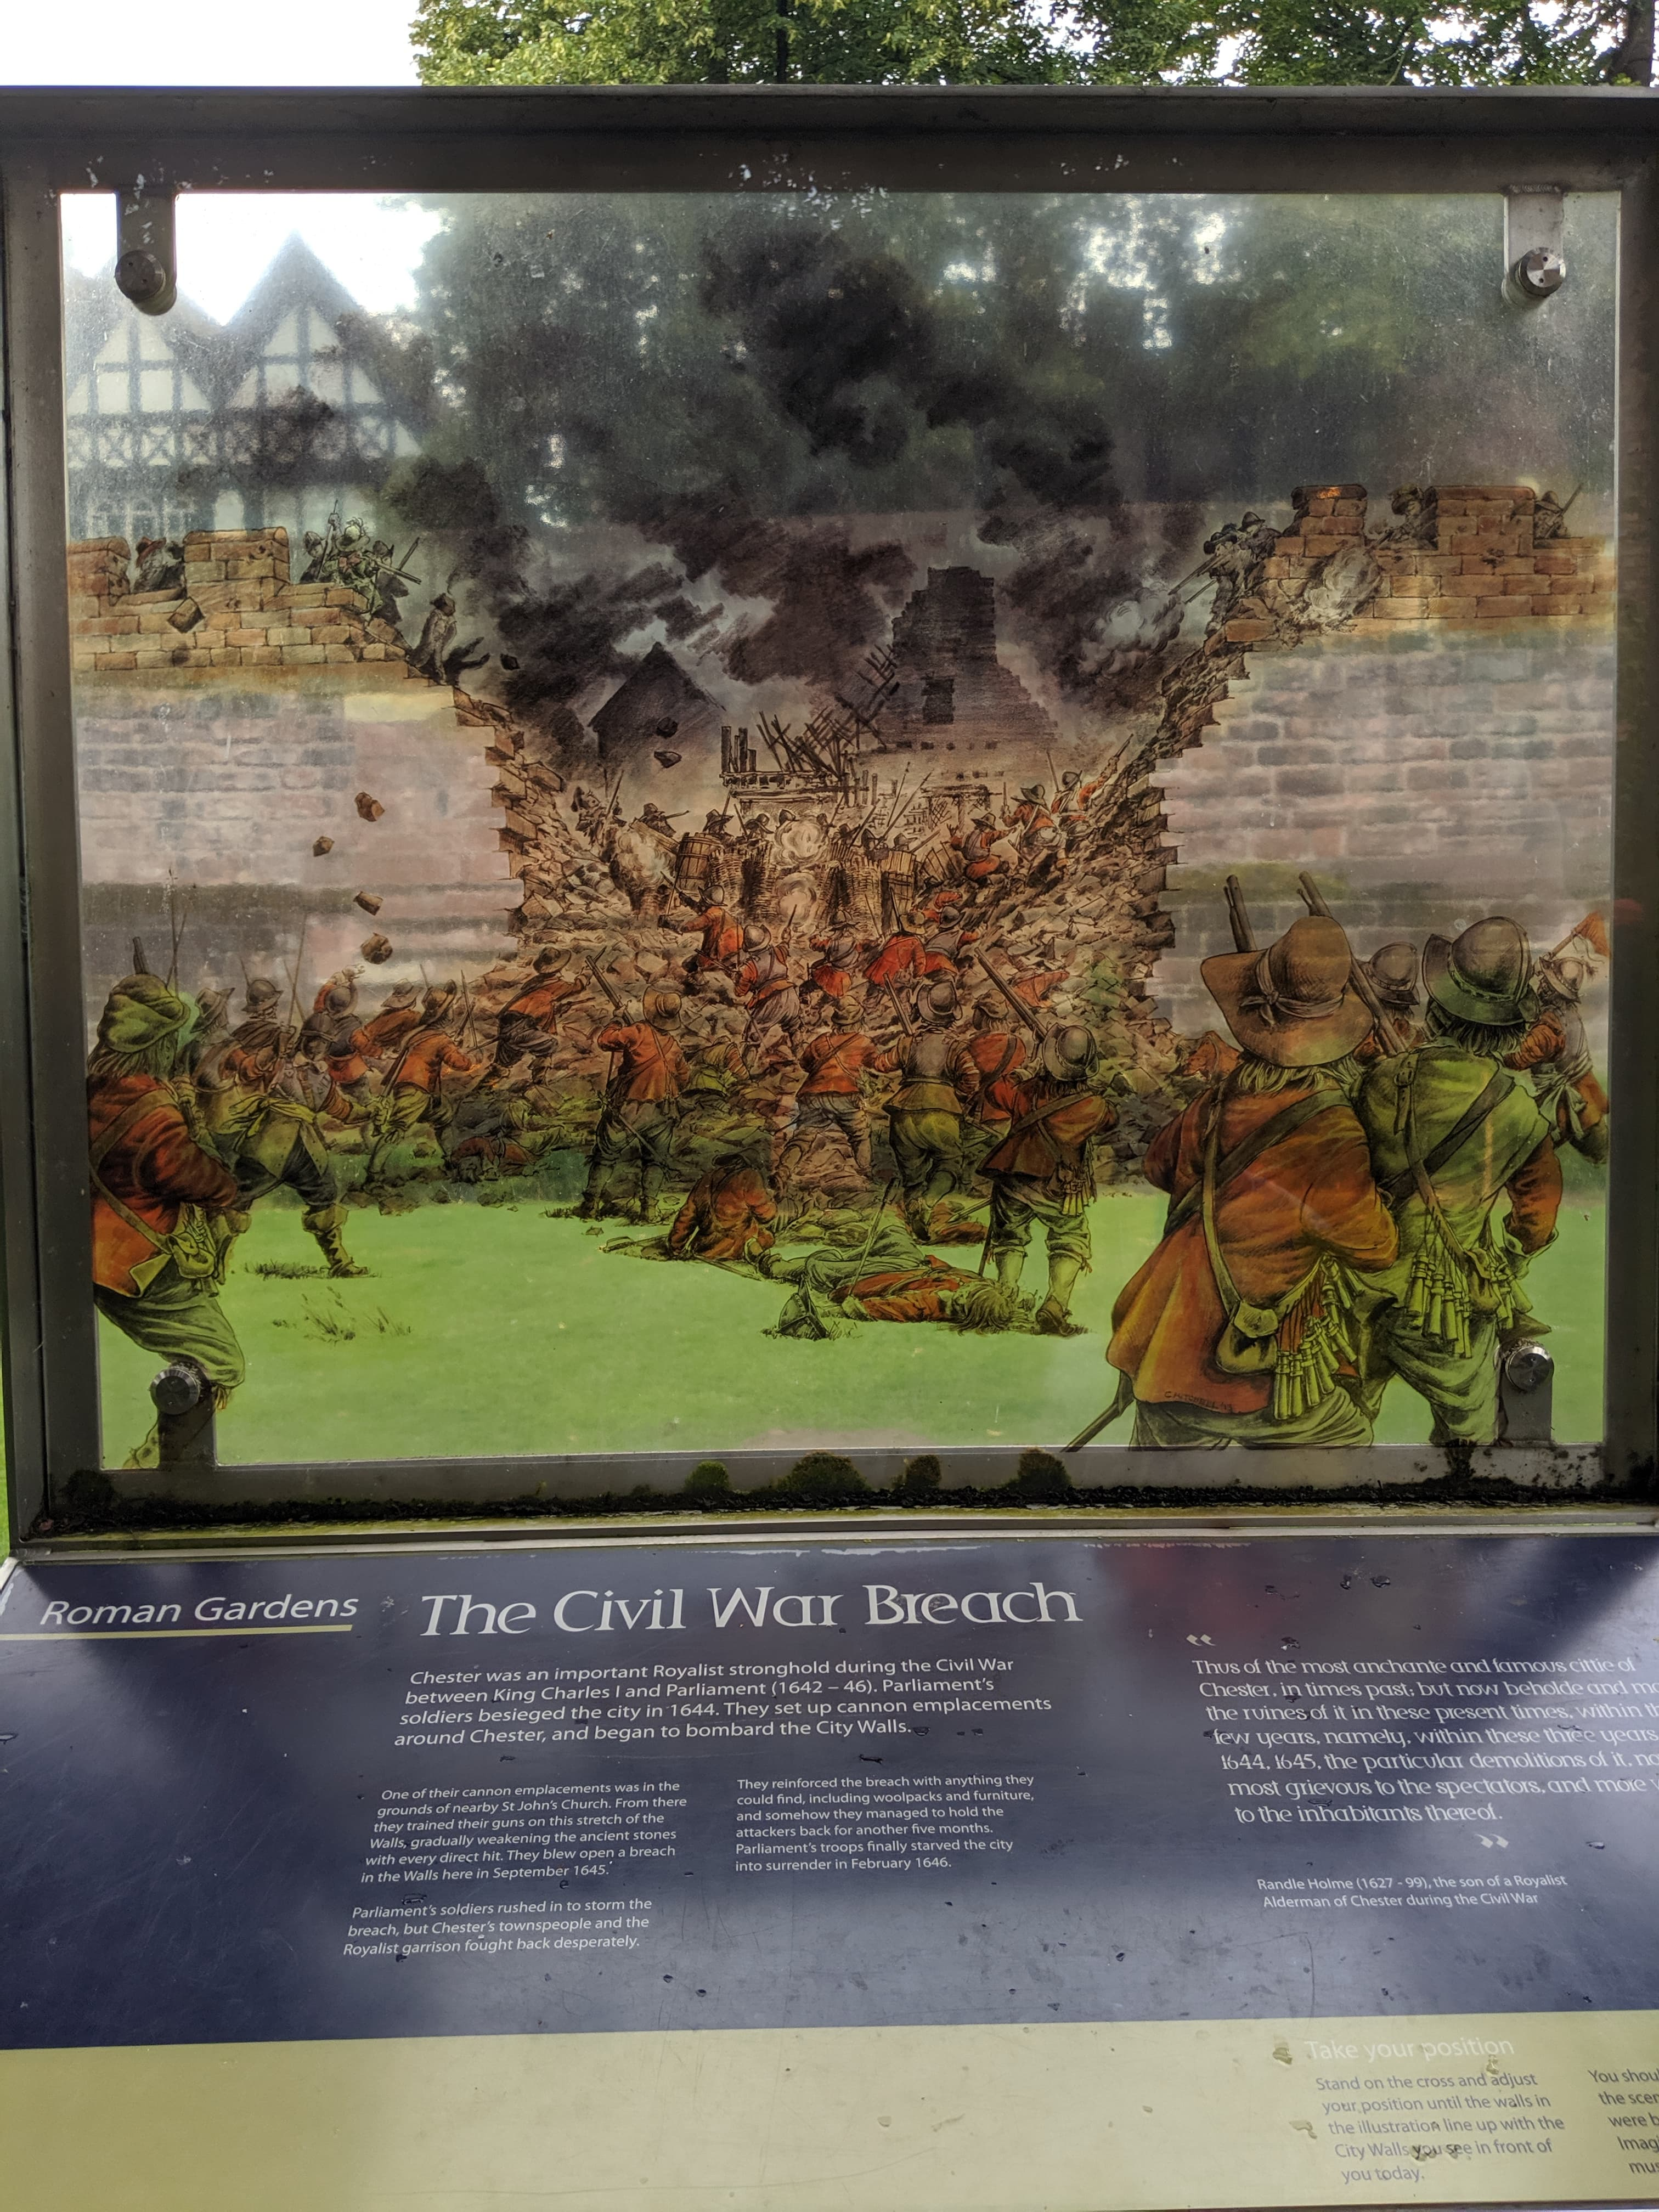 Image of Roman Gardens and Civil War Breach AR experience